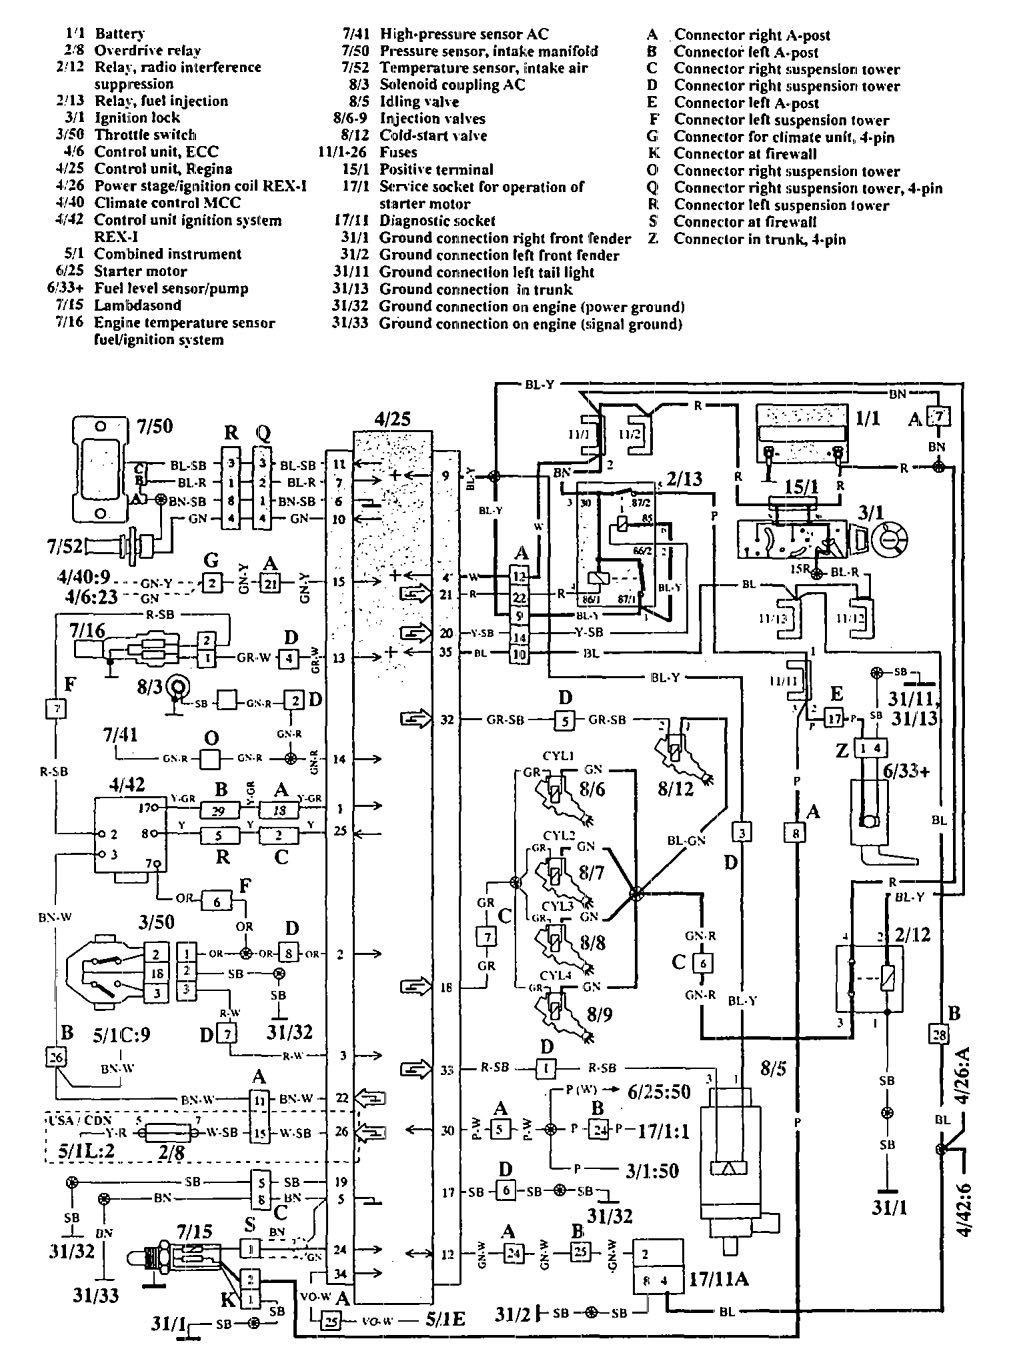 Honda Aero 80 Wiring Diagram further 1990 240sx Engine Wiring Diagram Html together with 96 Miata Radio Wiring further Page2 besides 1985 Honda Prelude Wiring Diagram. on 1990 acura integra ignition diagram